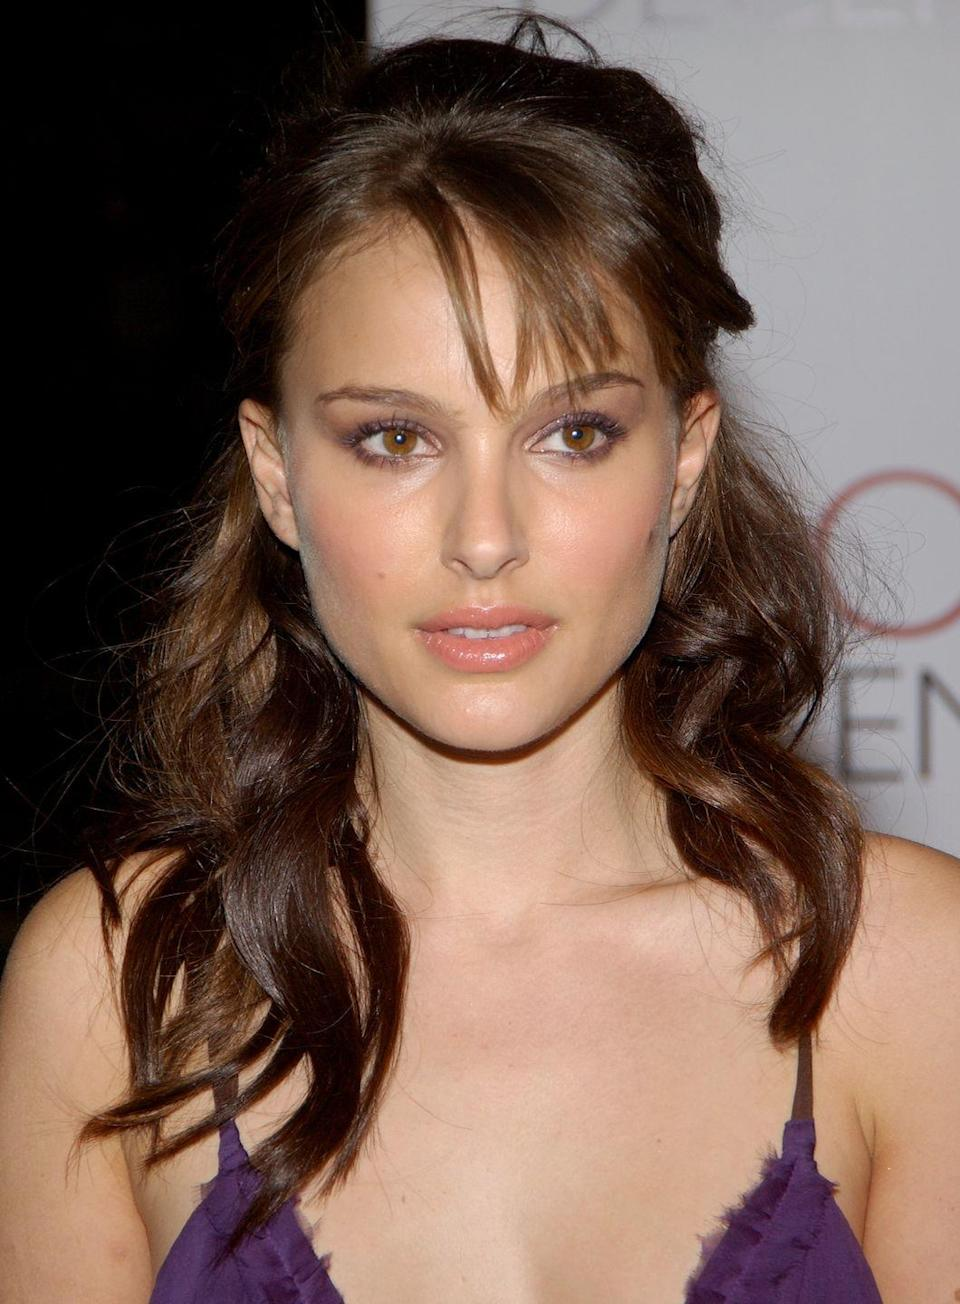 <p>Thanks to her role in the <em>Star Wars</em> franchise, Natalie Portman was one of the biggest up-and-coming actresses circa the late '90s and early 2000s. She was also known for her red carpet style and long brown hair.</p>